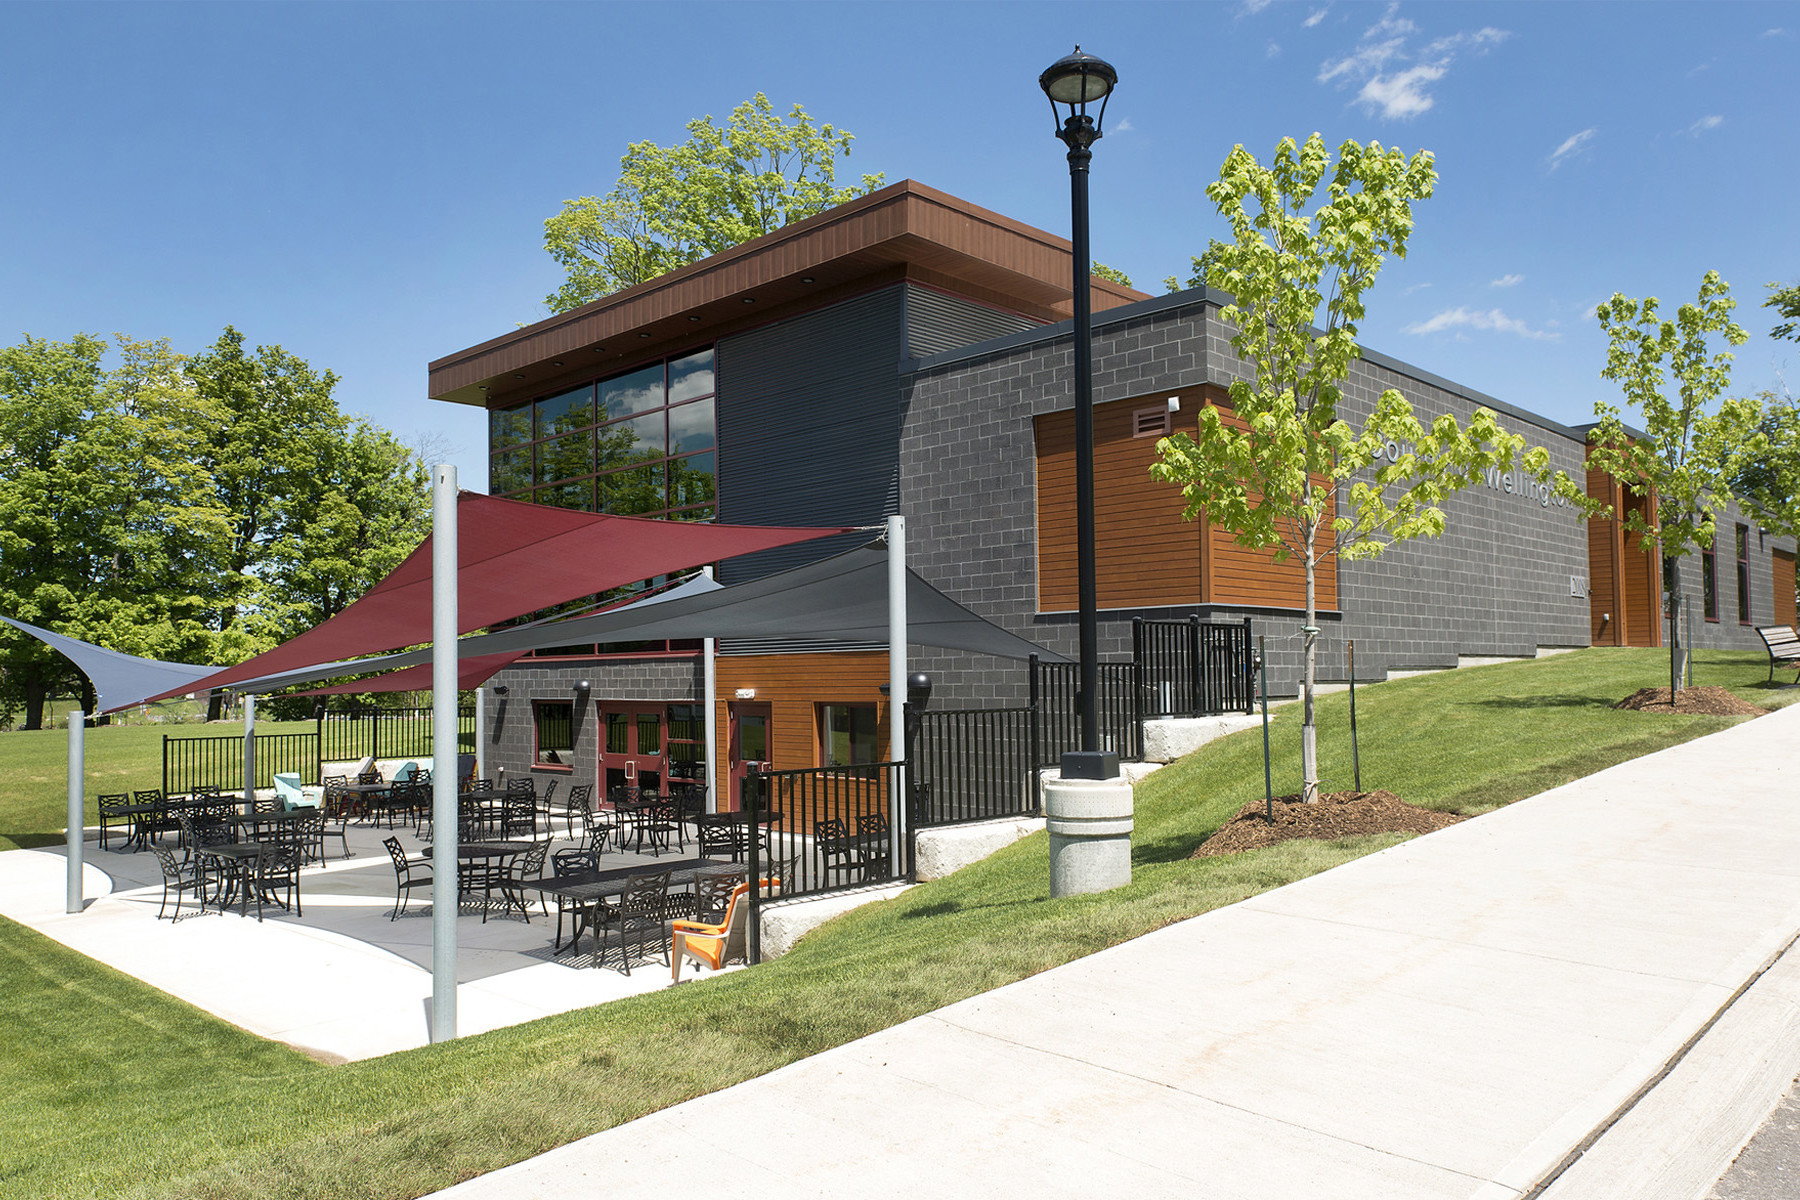 View of double height glazed addition from sidewalk with canopy covered patio seating